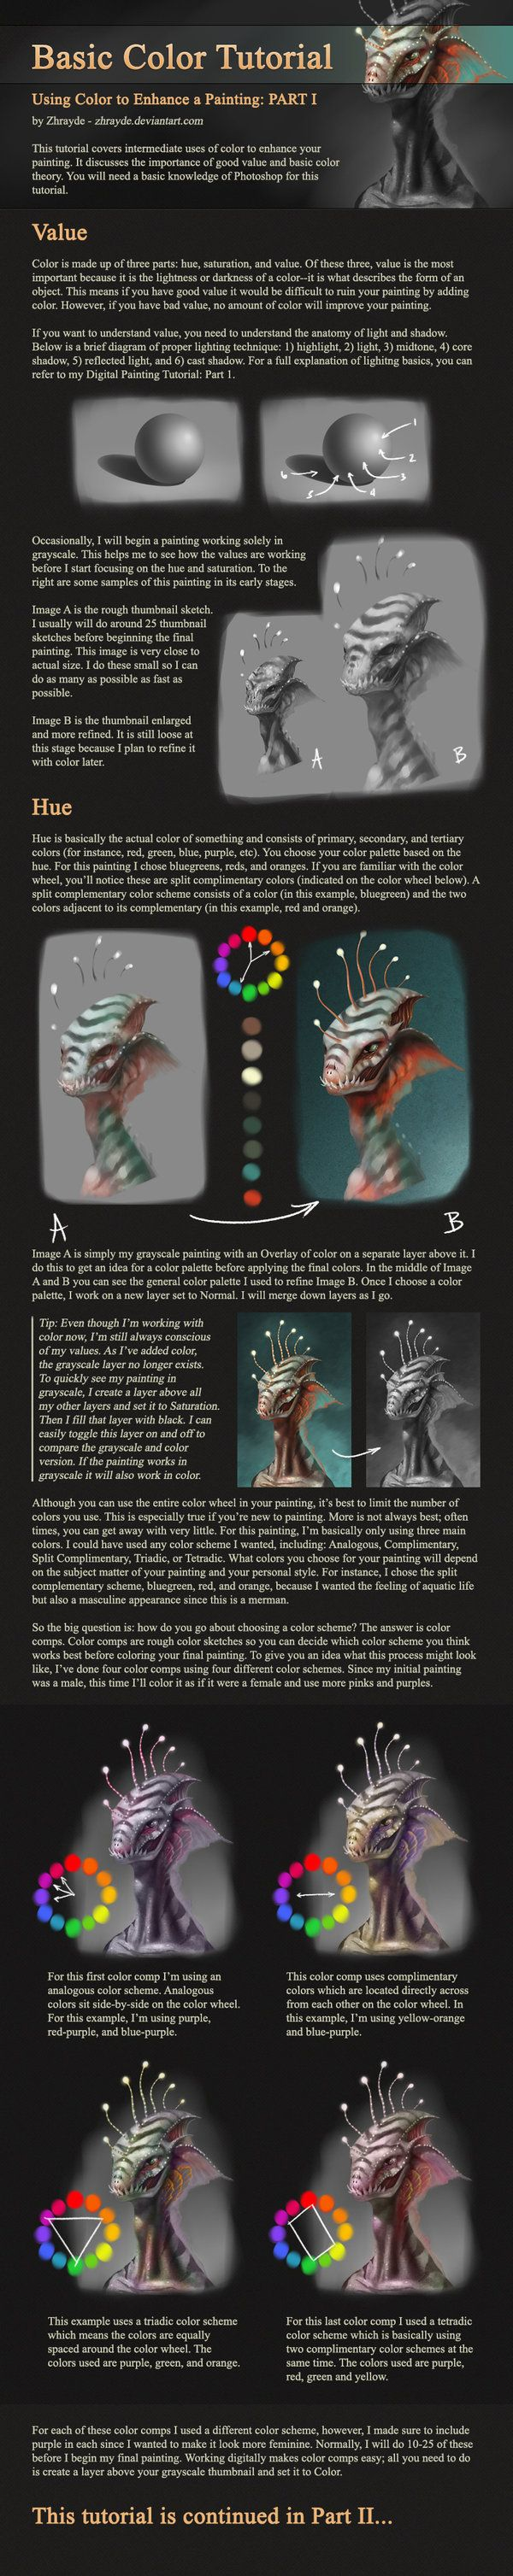 Basic Color Tutorial - Part 1 by Zhrayde [dA]